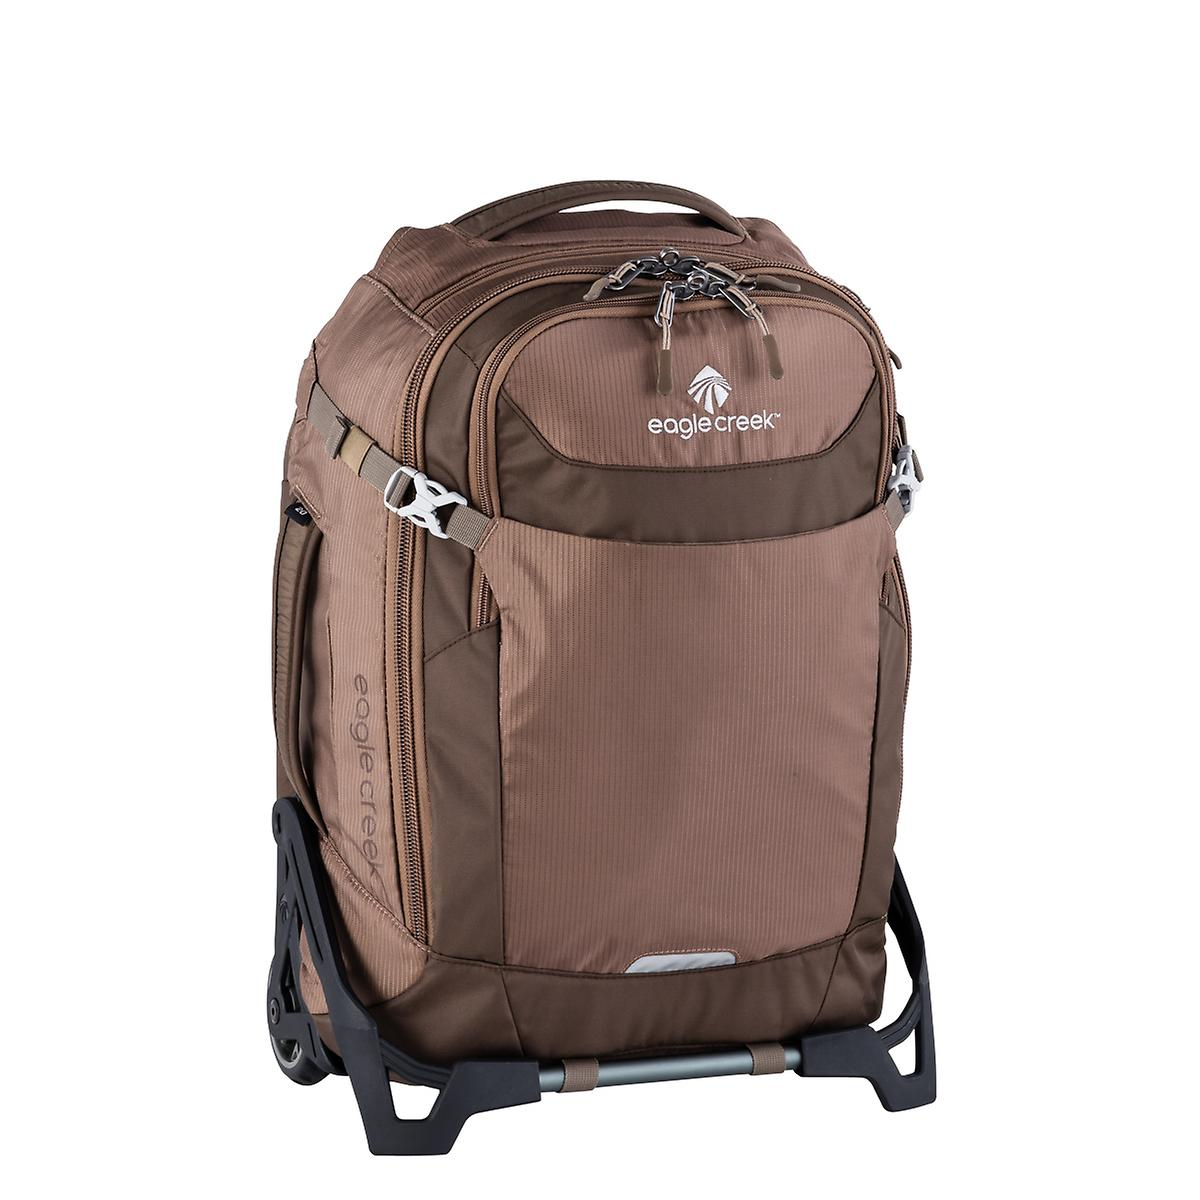 eagle creek This extremely versatile carry-on has zip away backpack straps and a padded hip belt for when you need to go hands free, but still have the optio.